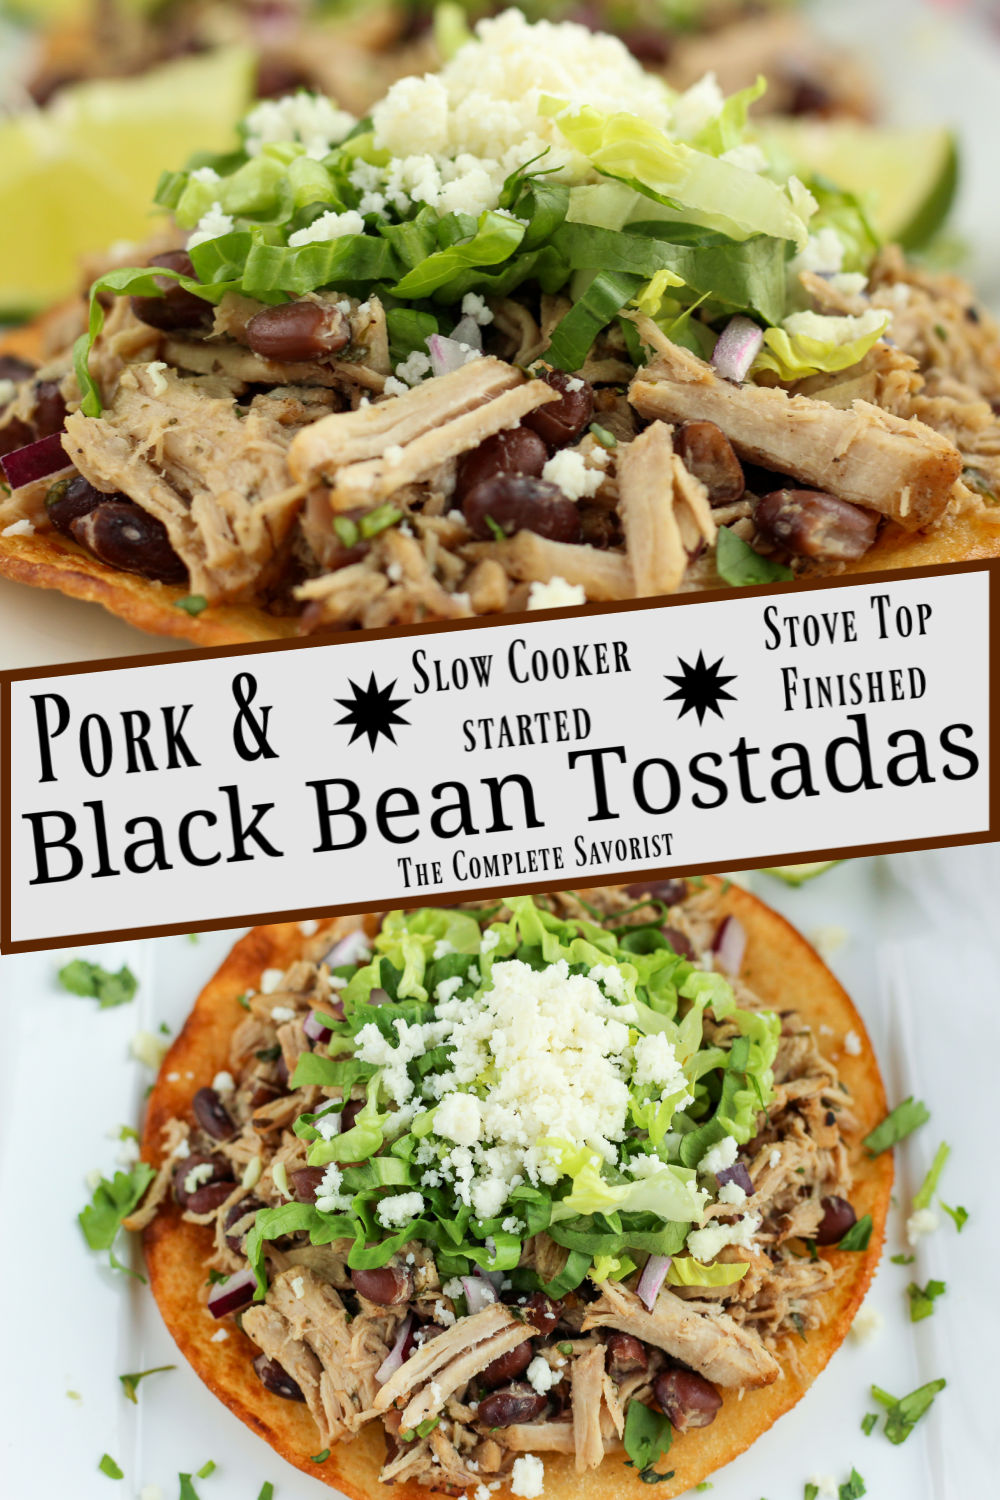 Spilt image of pork and black bean tostadas, a top view and a side view.